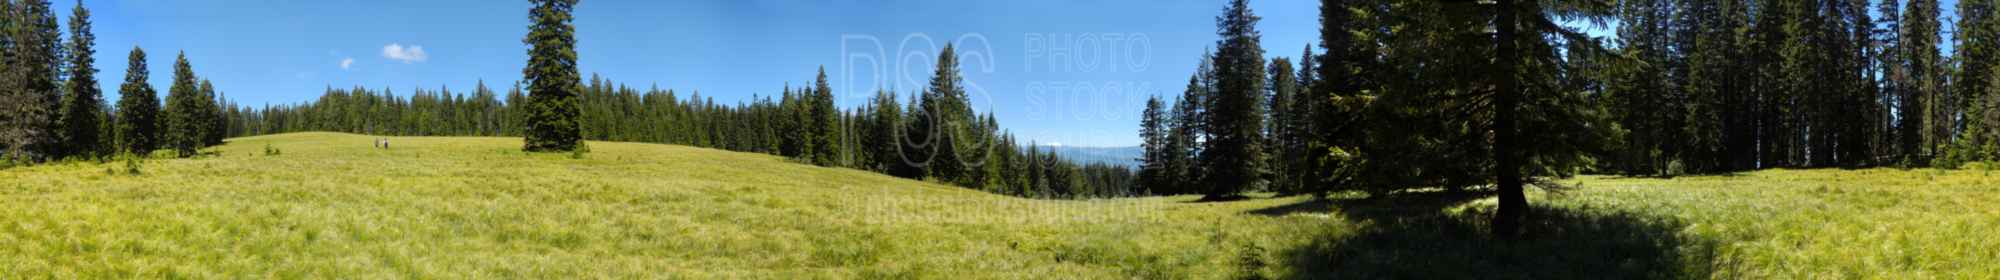 Sourgrass Mountain Meadow